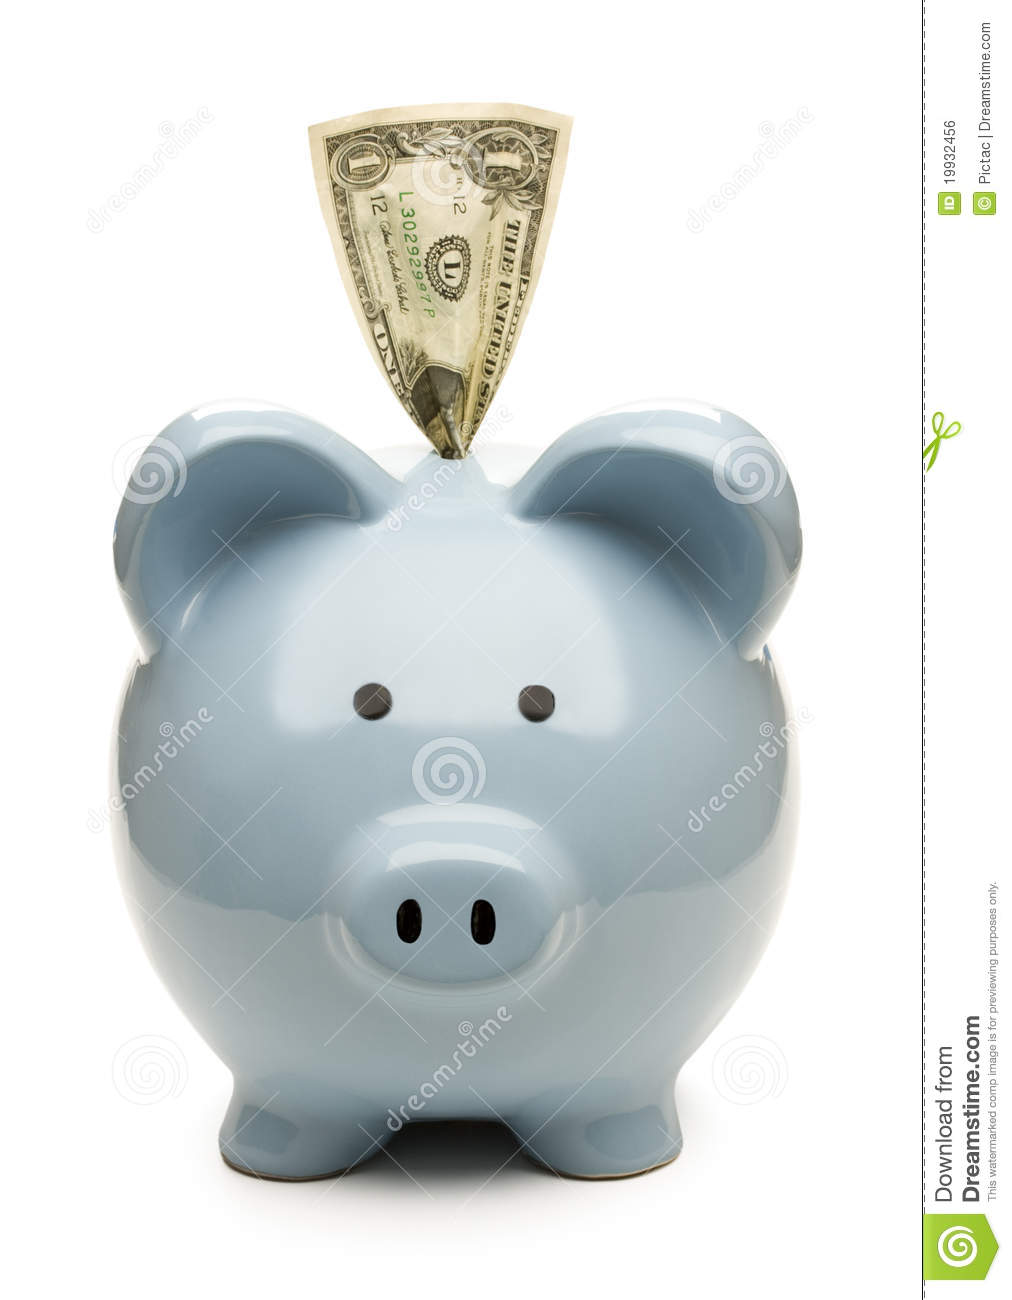 Piggy bank and saving royalty free stock image image for How to make a piggy bank you can t open